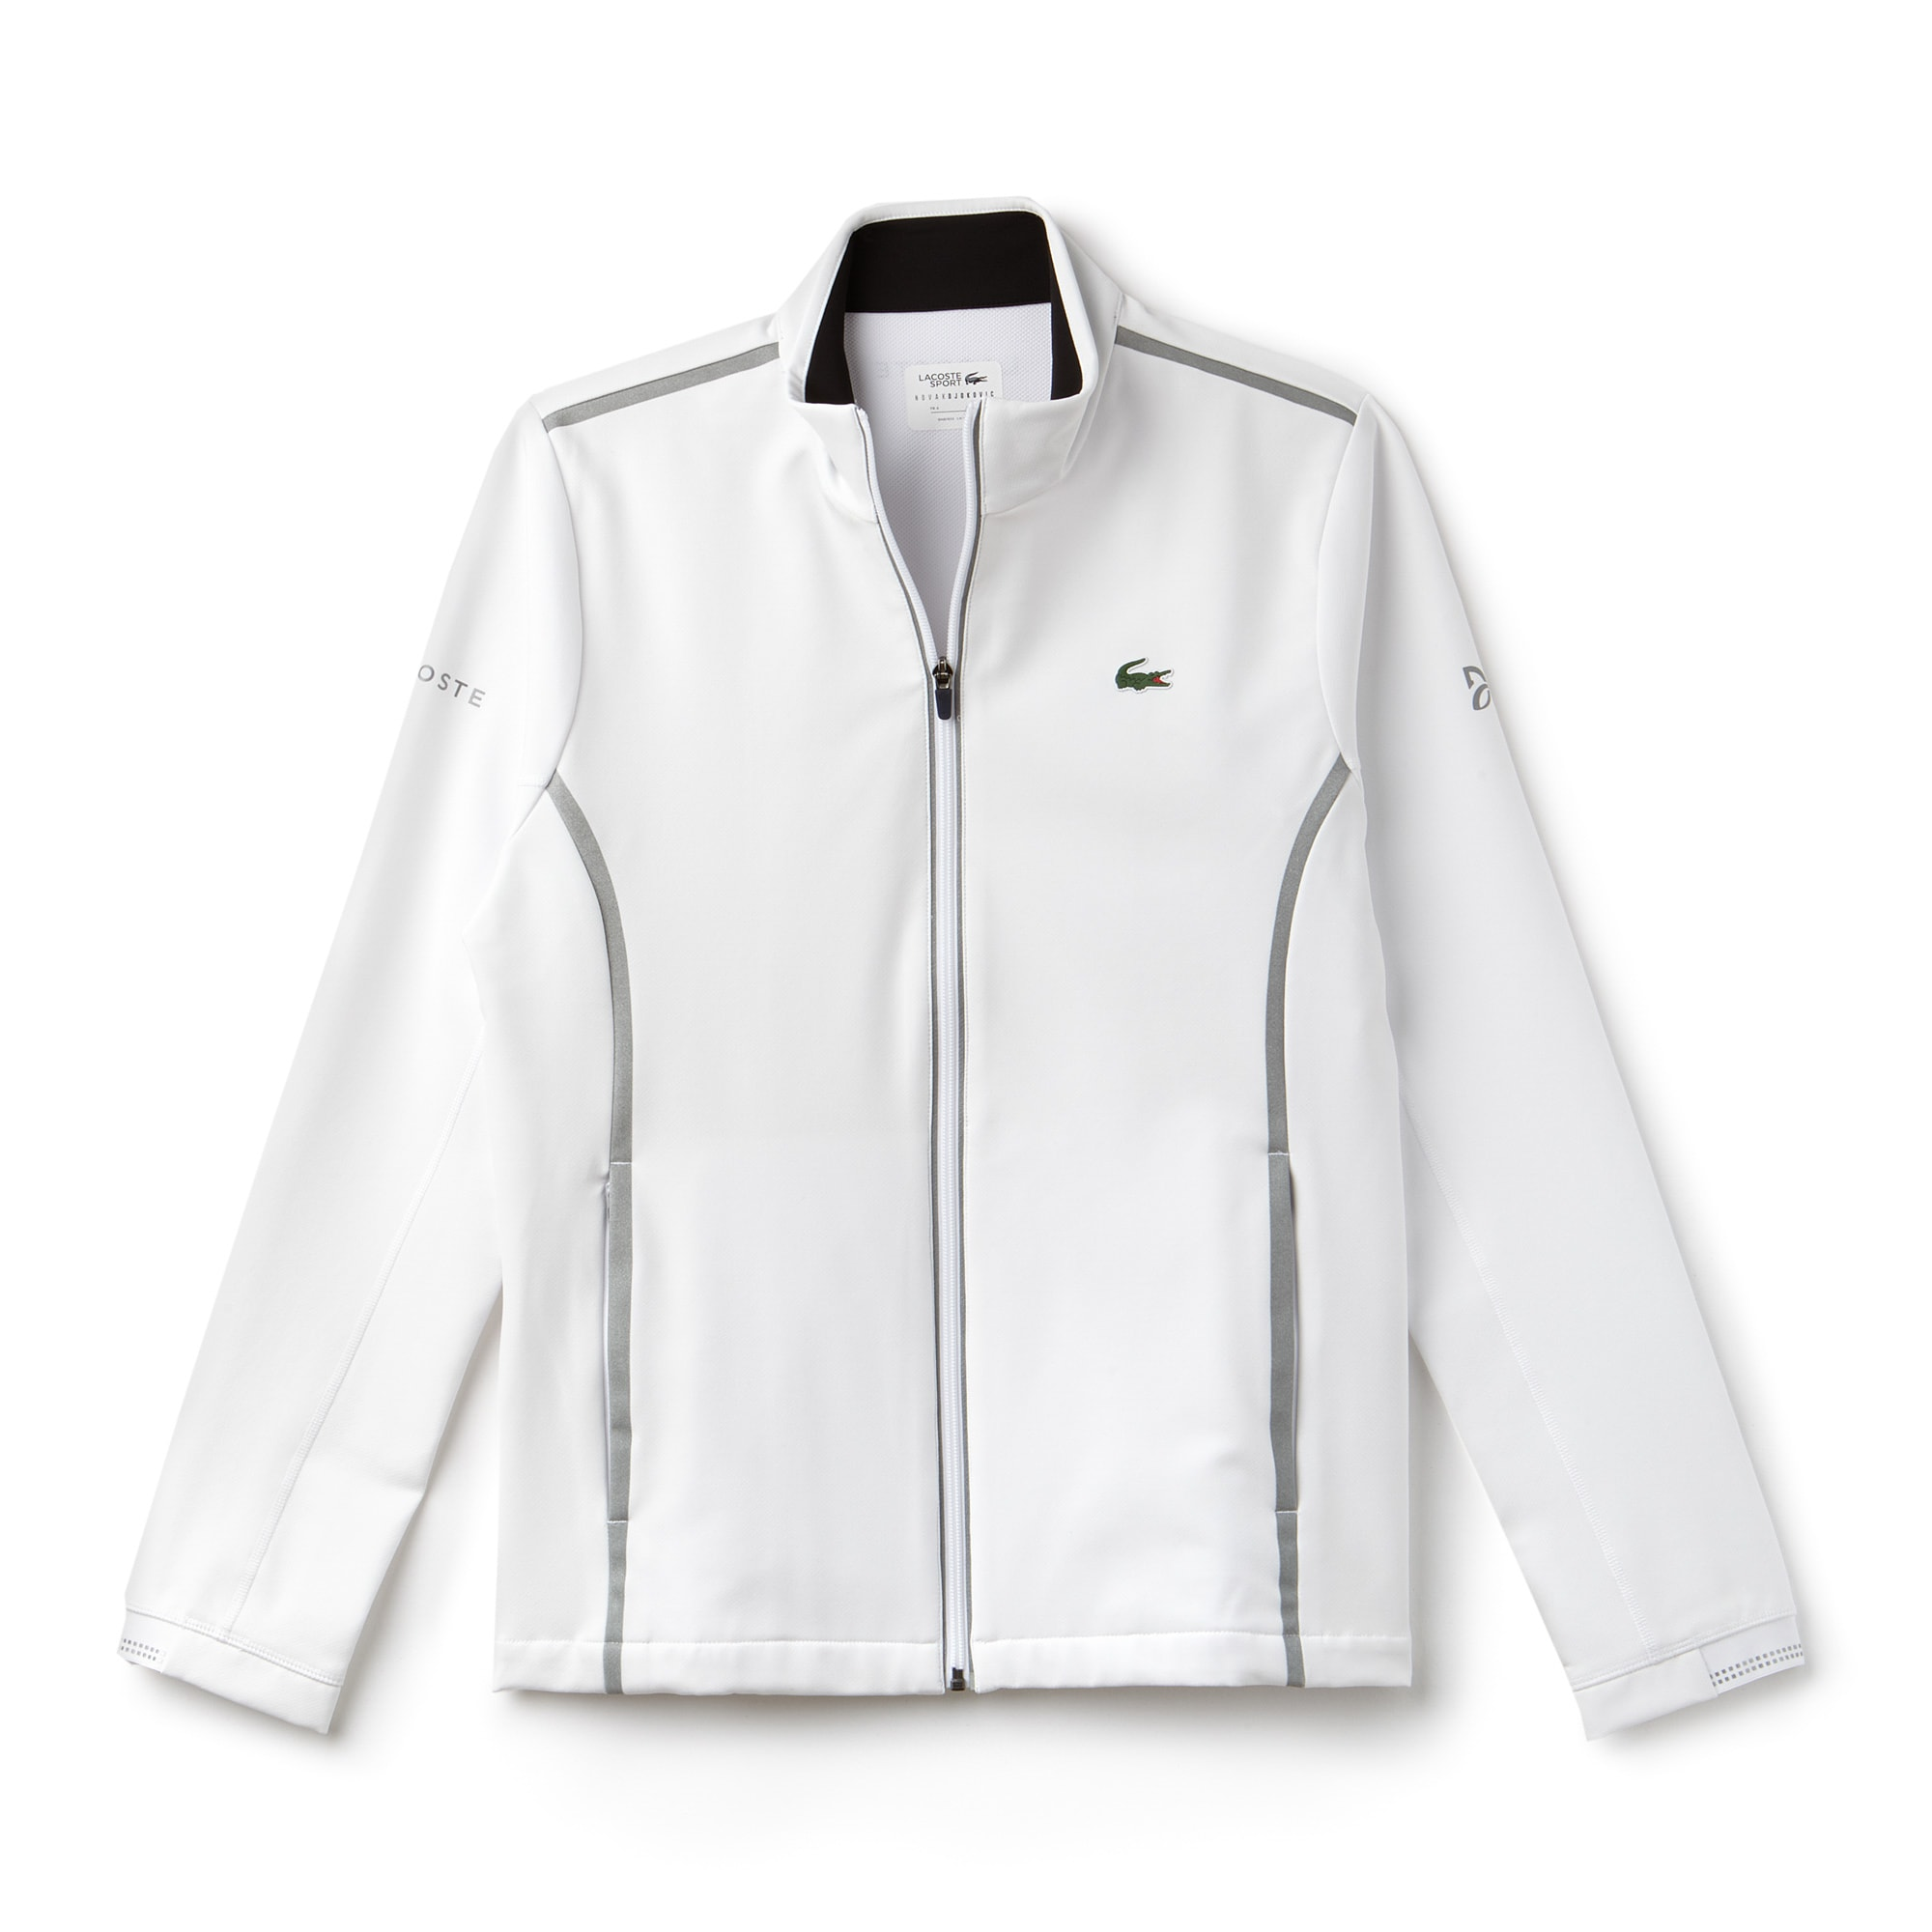 Felpa con zip Lacoste SPORT COLLEZIONE NOVAK DJOKOVIC SUPPORT WITH STYLE in midlayer tecnico